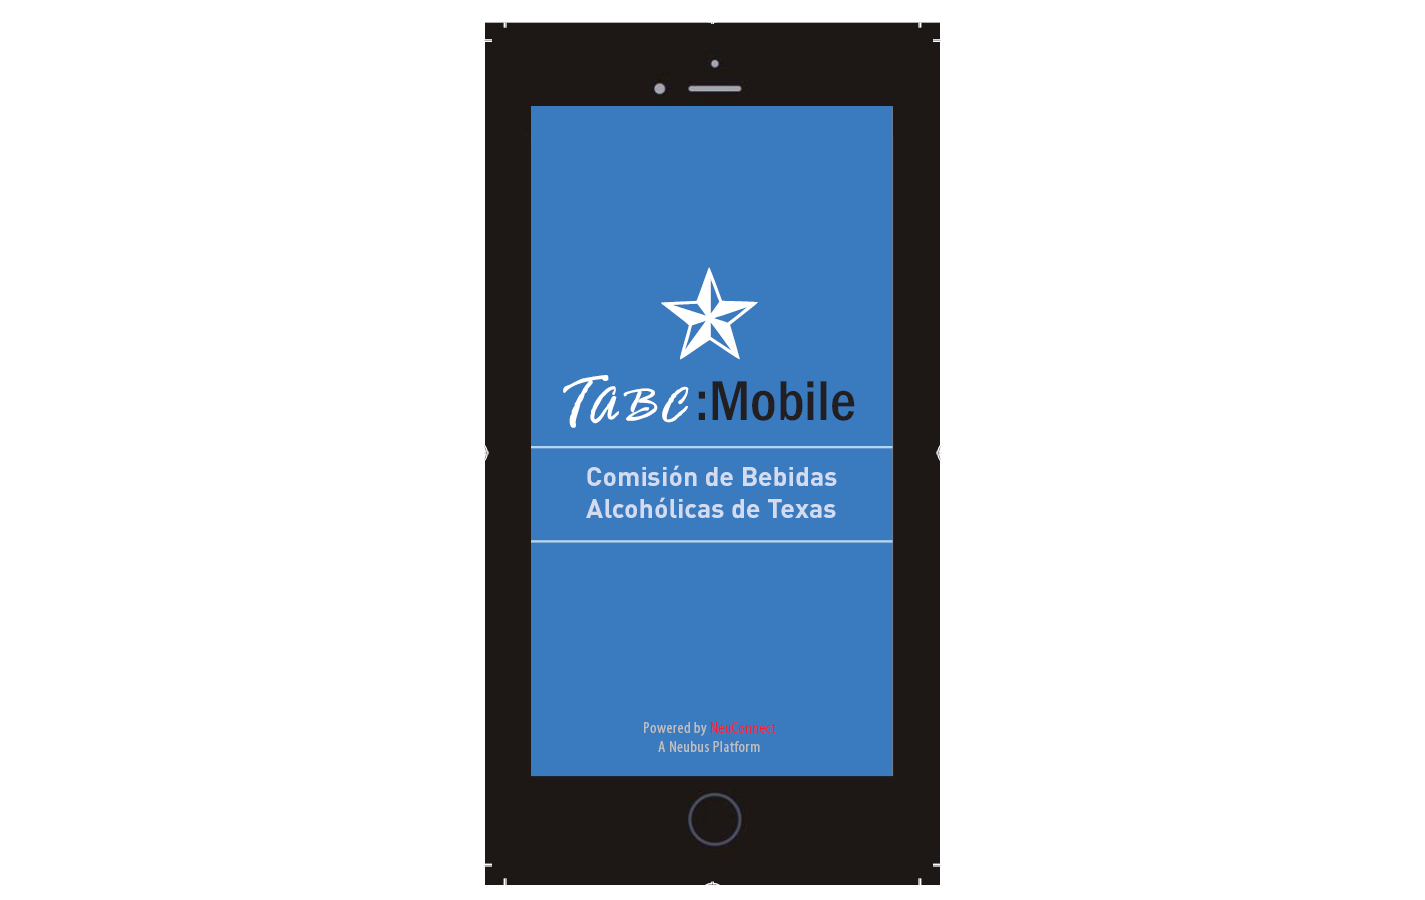 TABC:Mobile Card - Spanish